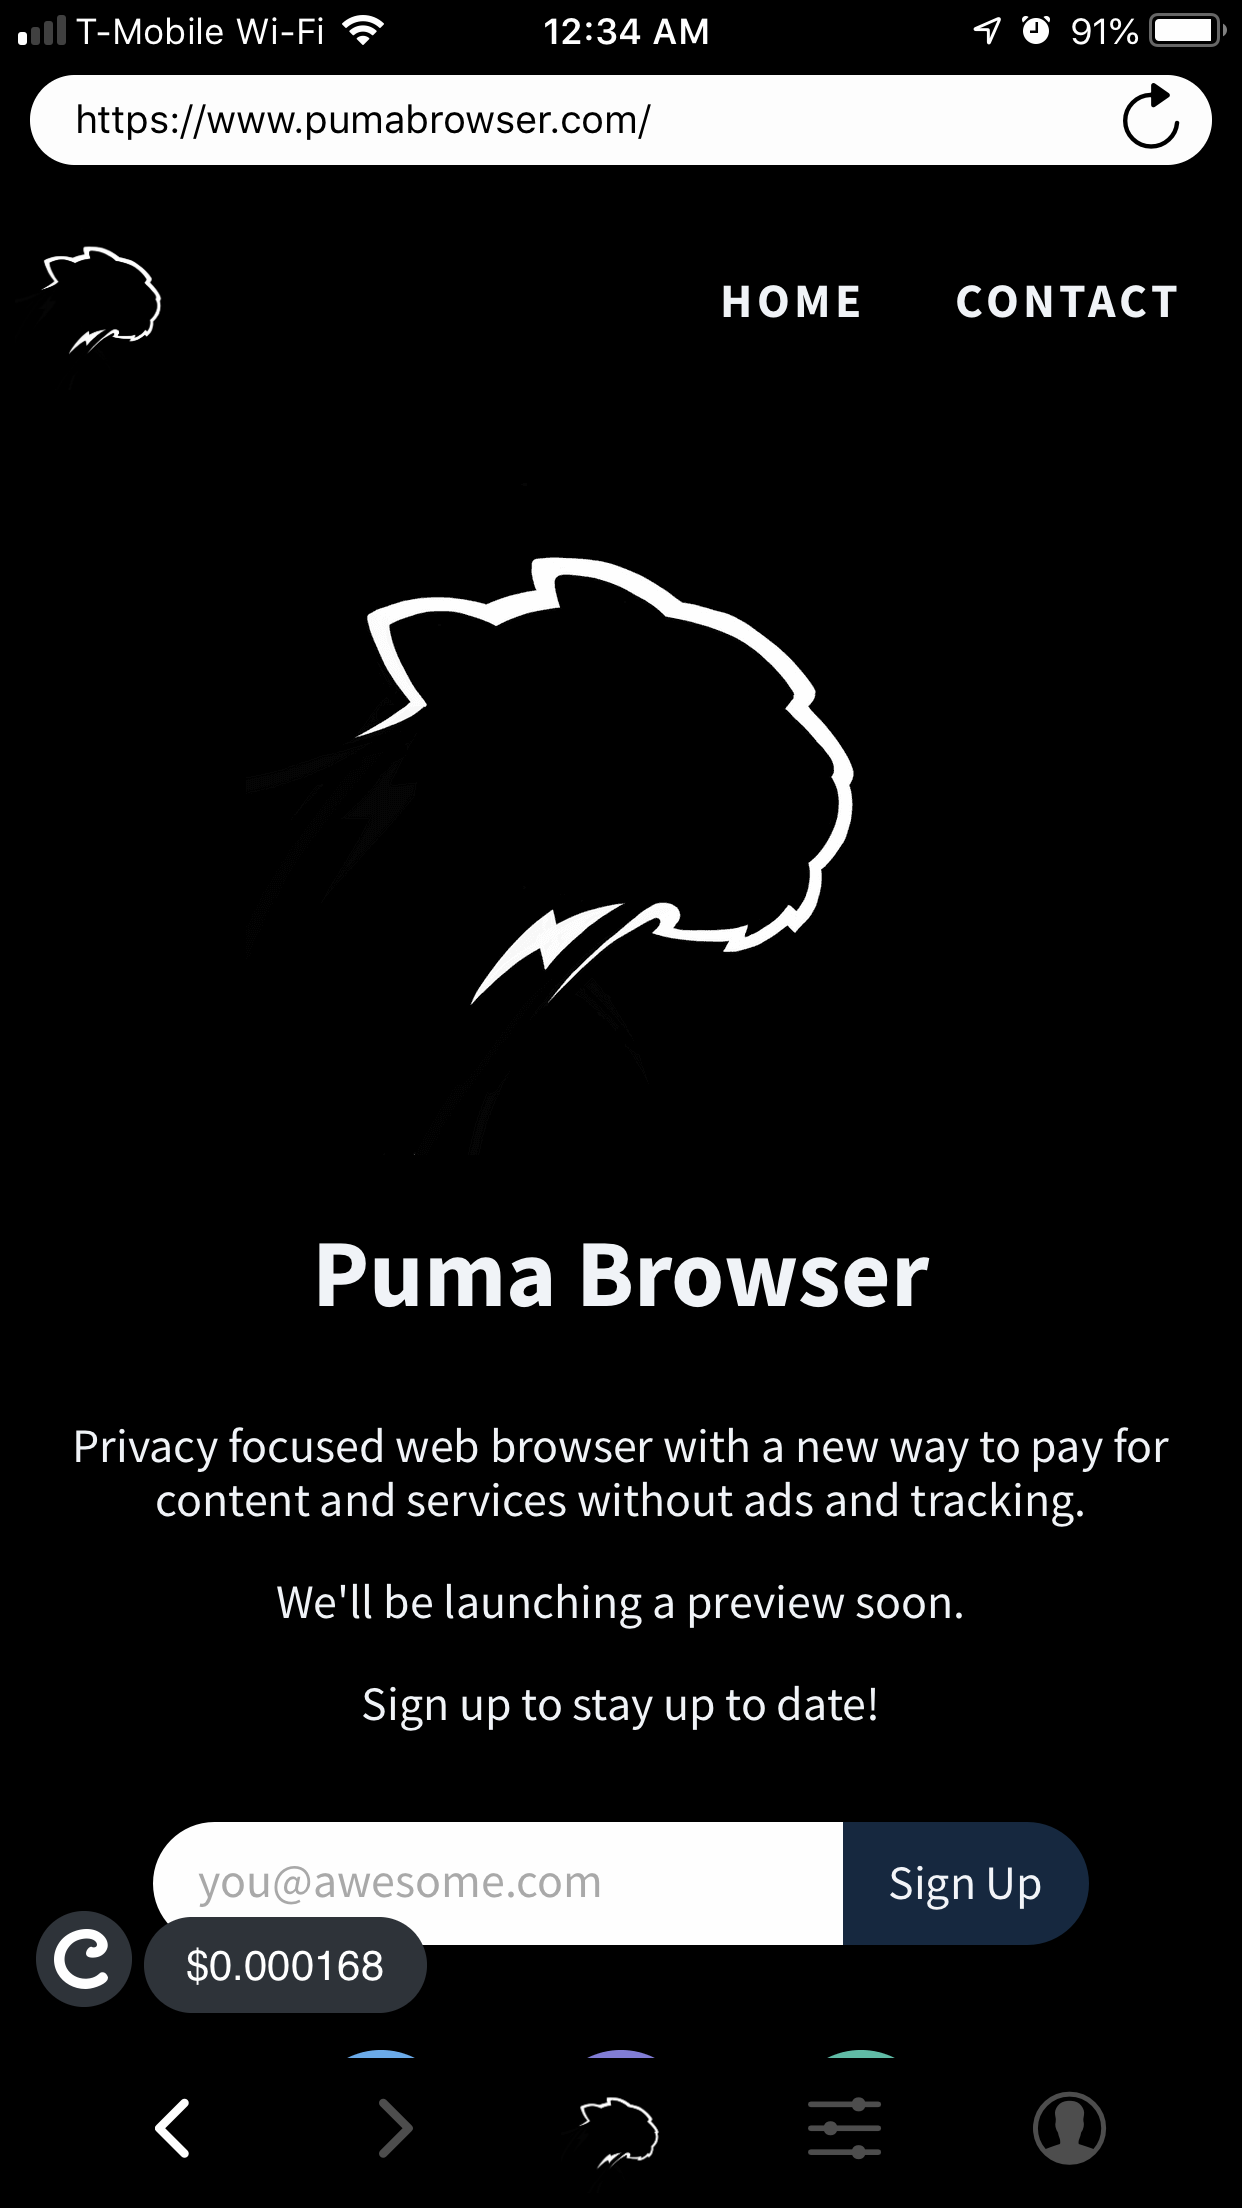 Puma Browser (Developer Preview) - Privacy focused browser with a new way to pay for content